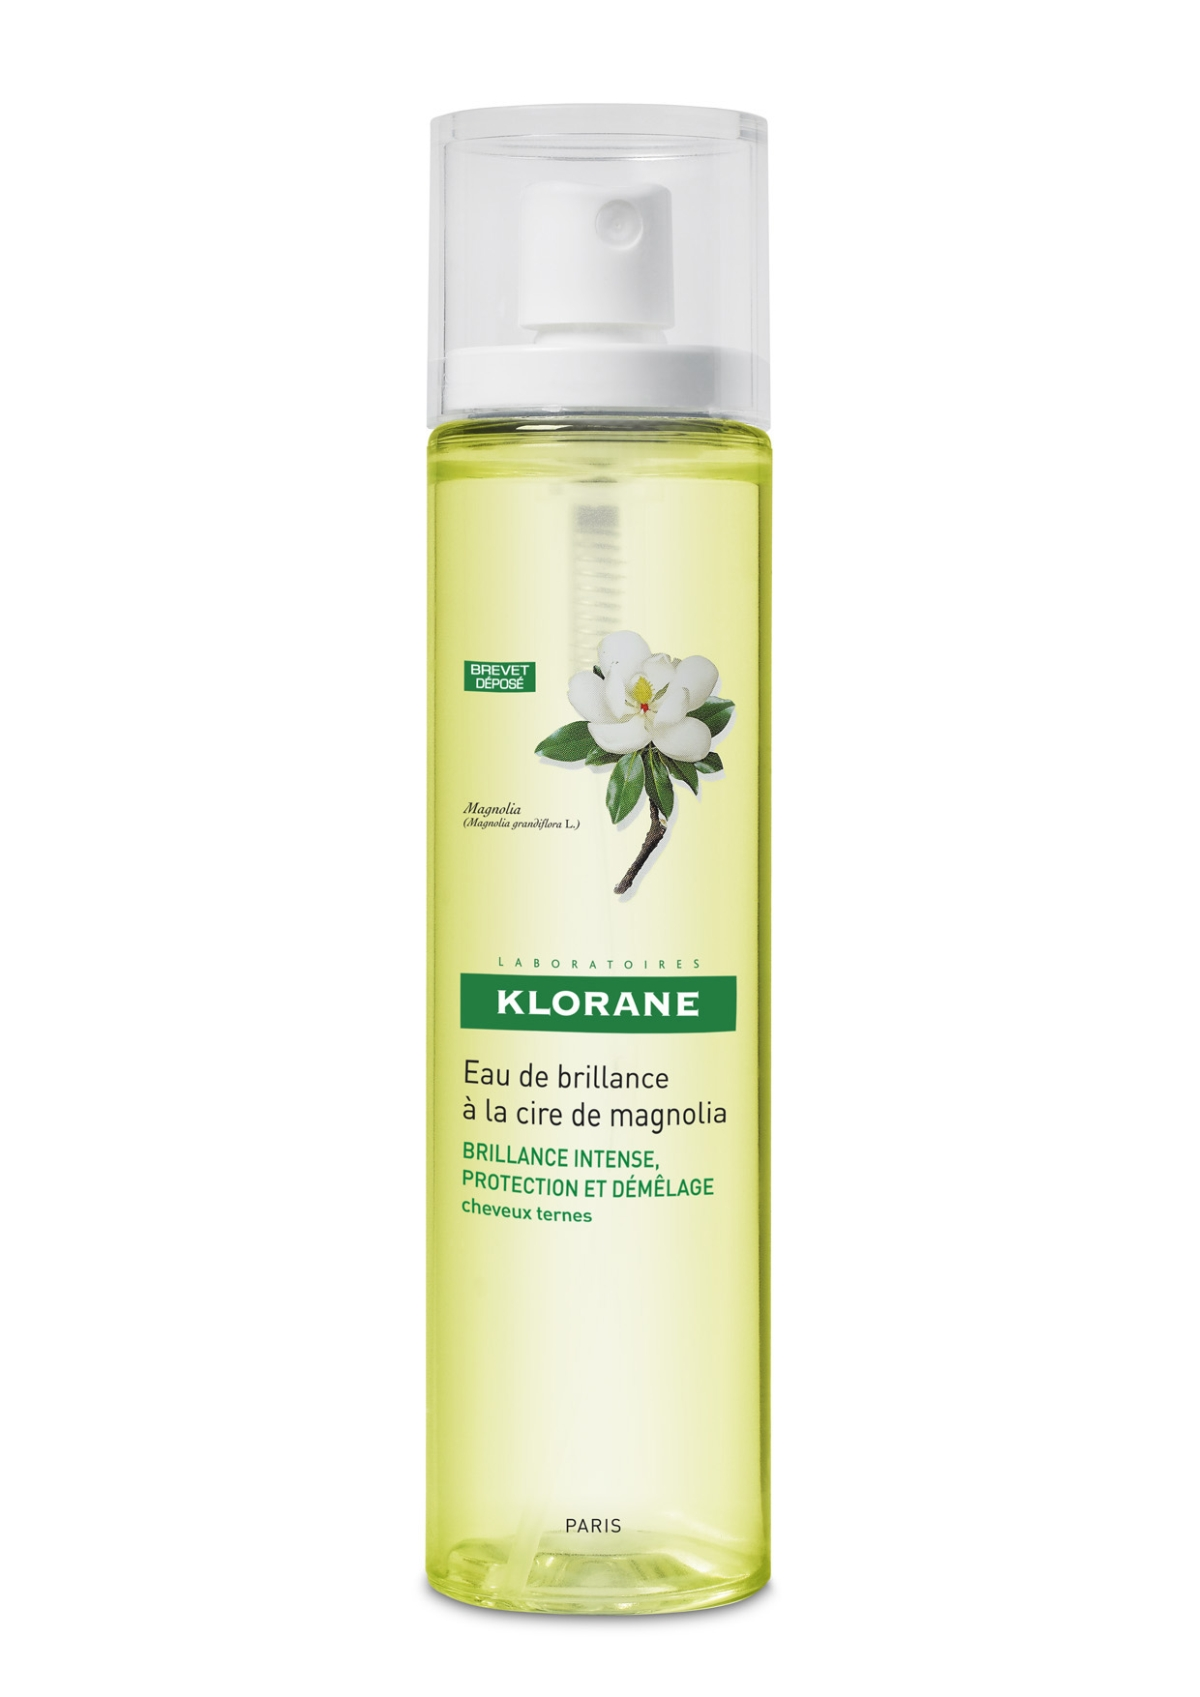 Klorane Eau de brilliance